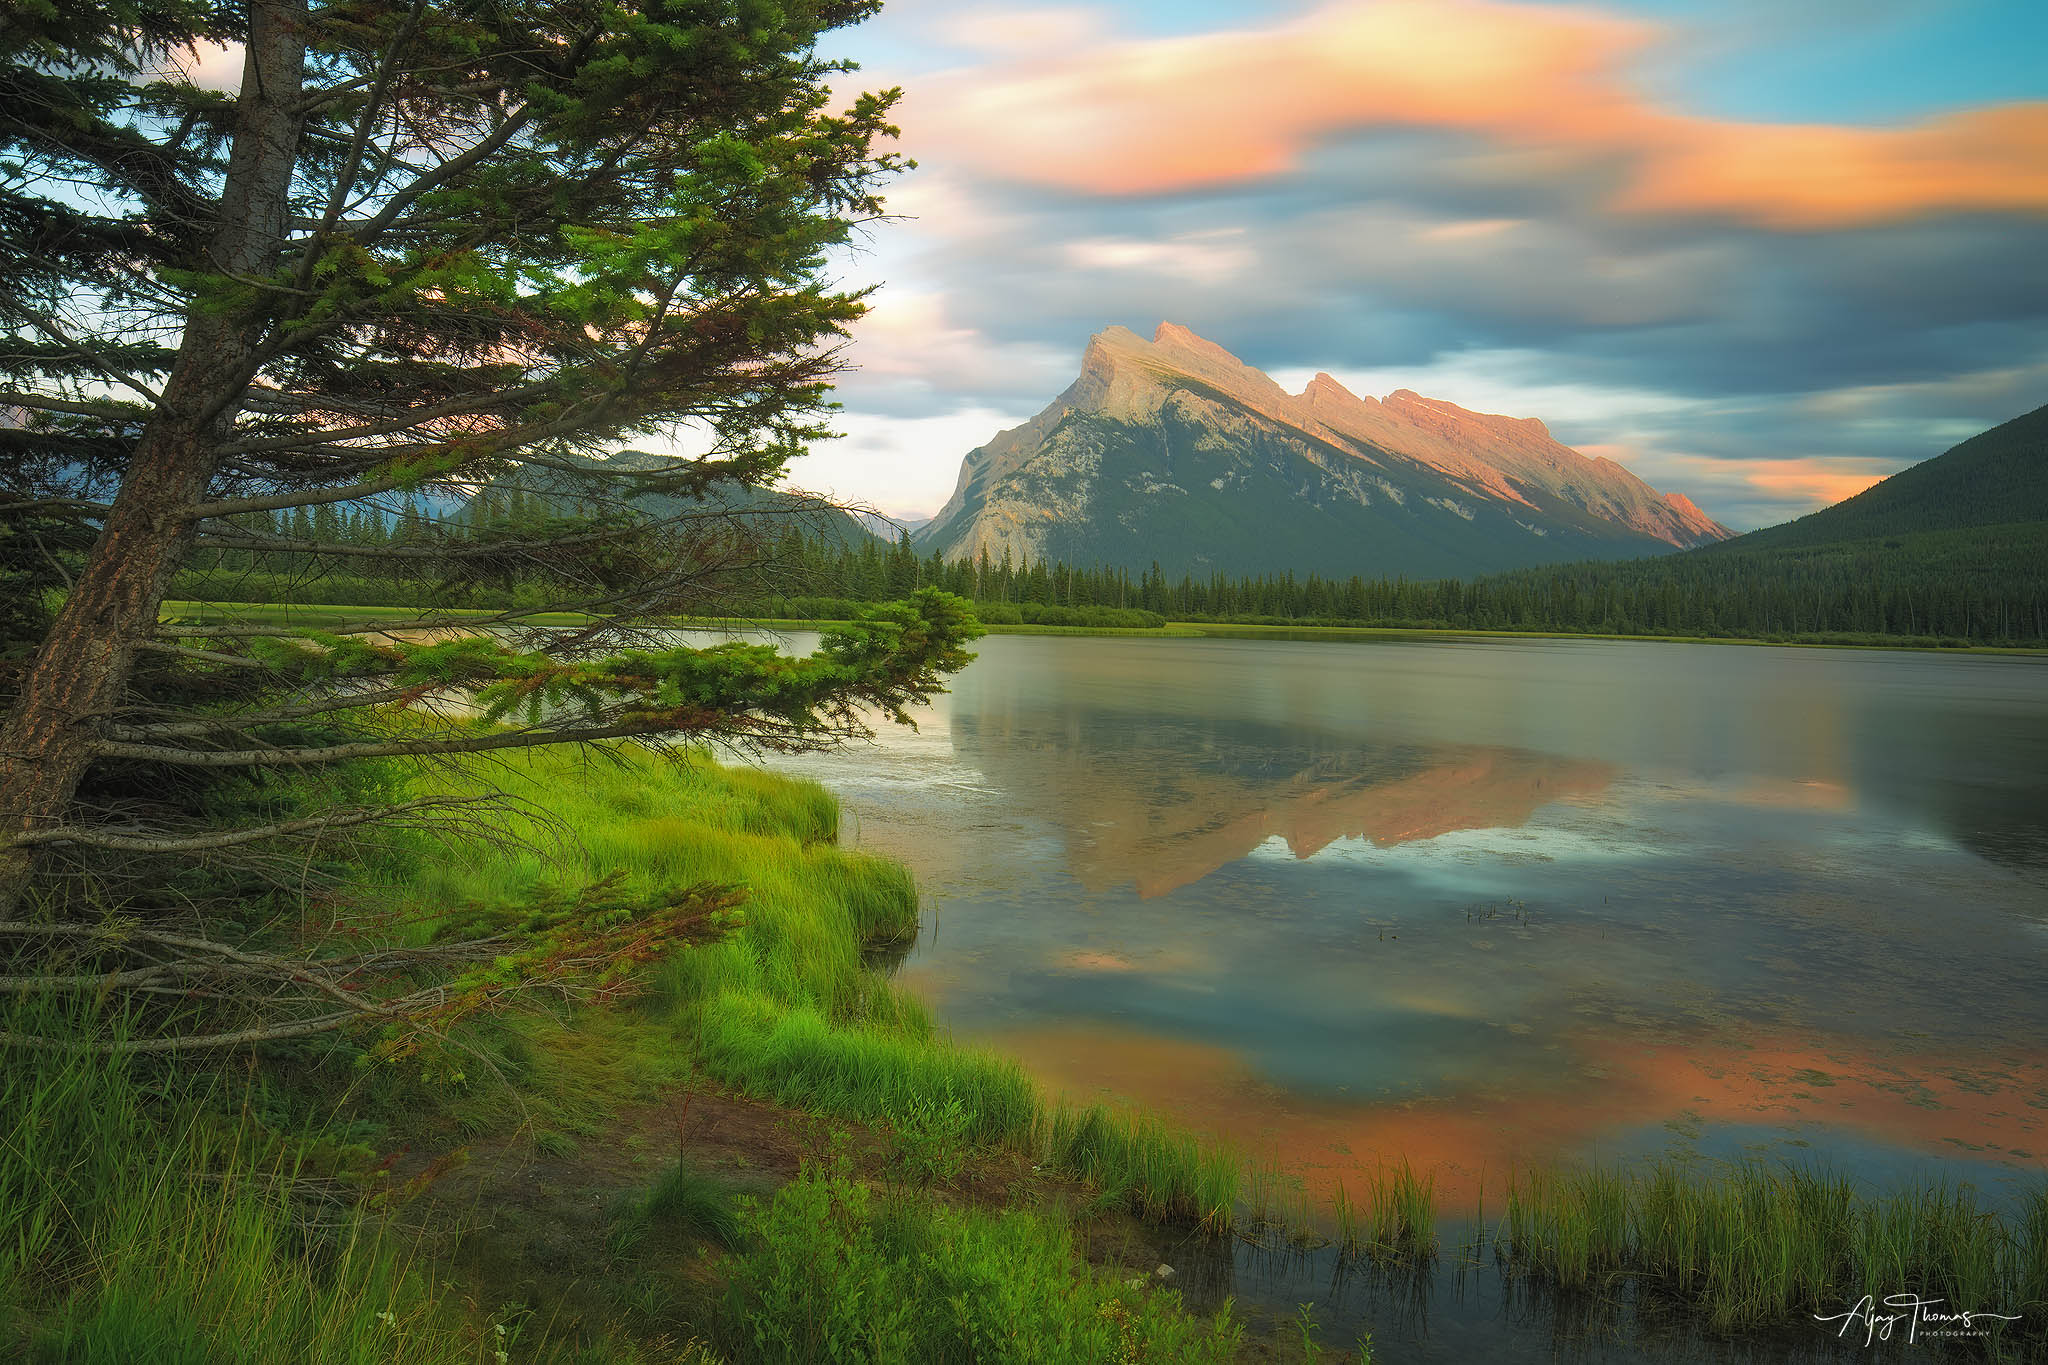 Mt.Rundle during sunset reflecting in vermillion lake. Banff National park Canada.